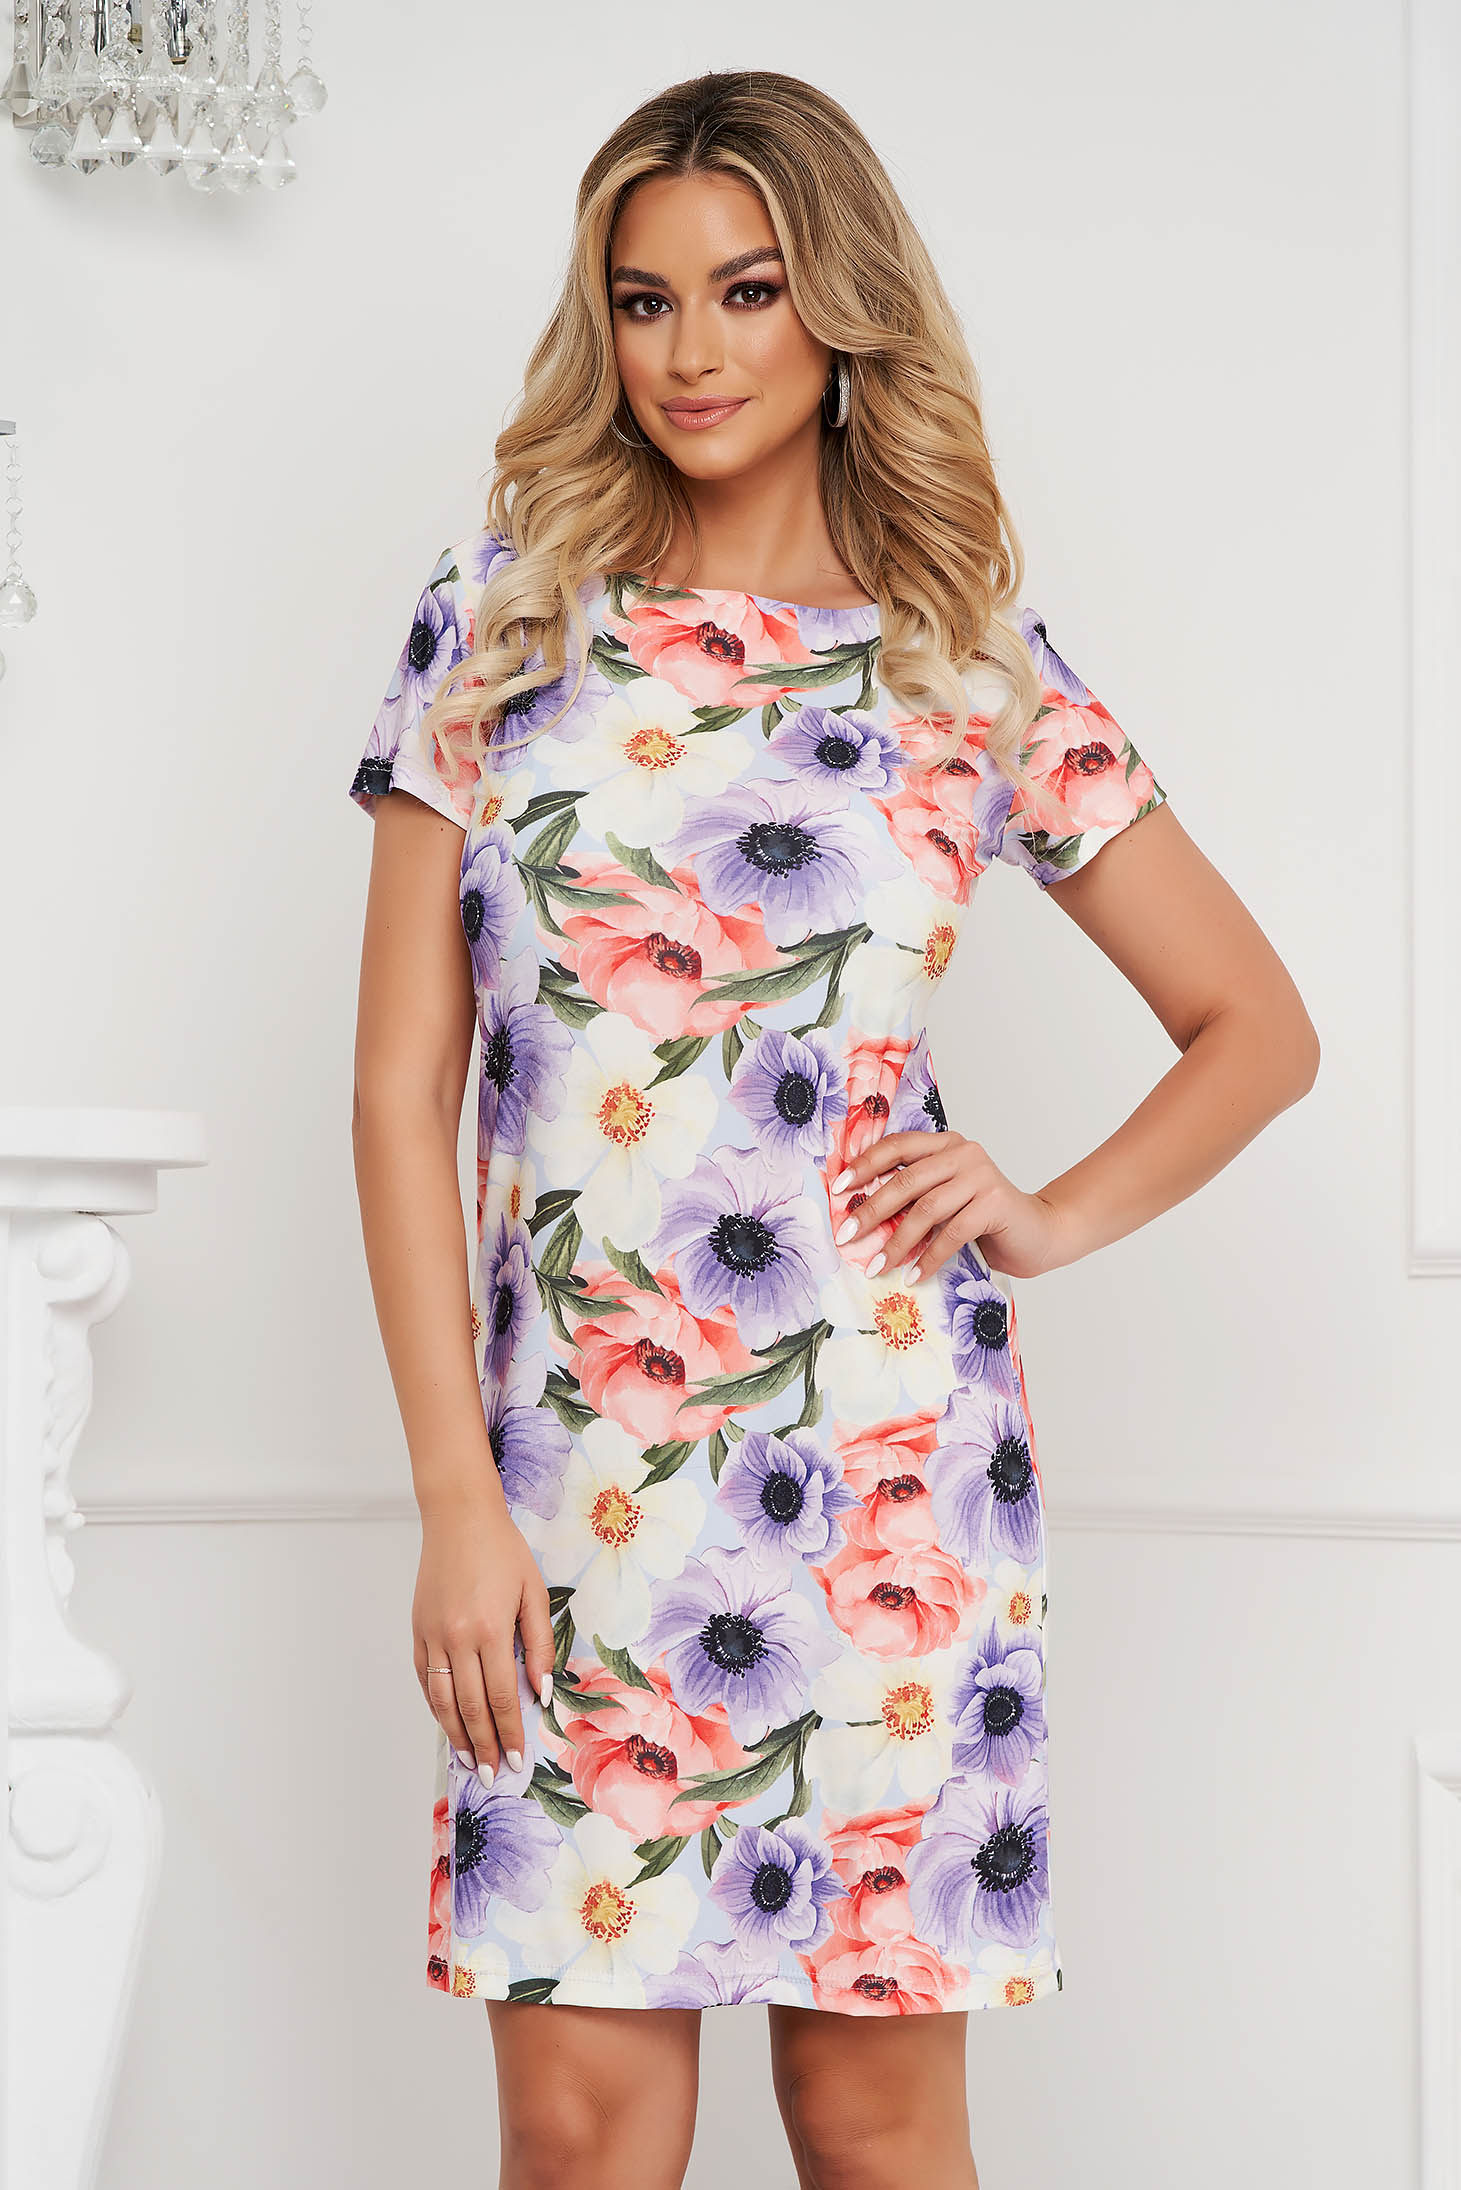 StarShinerS dress office short cut thin fabric with floral print straight